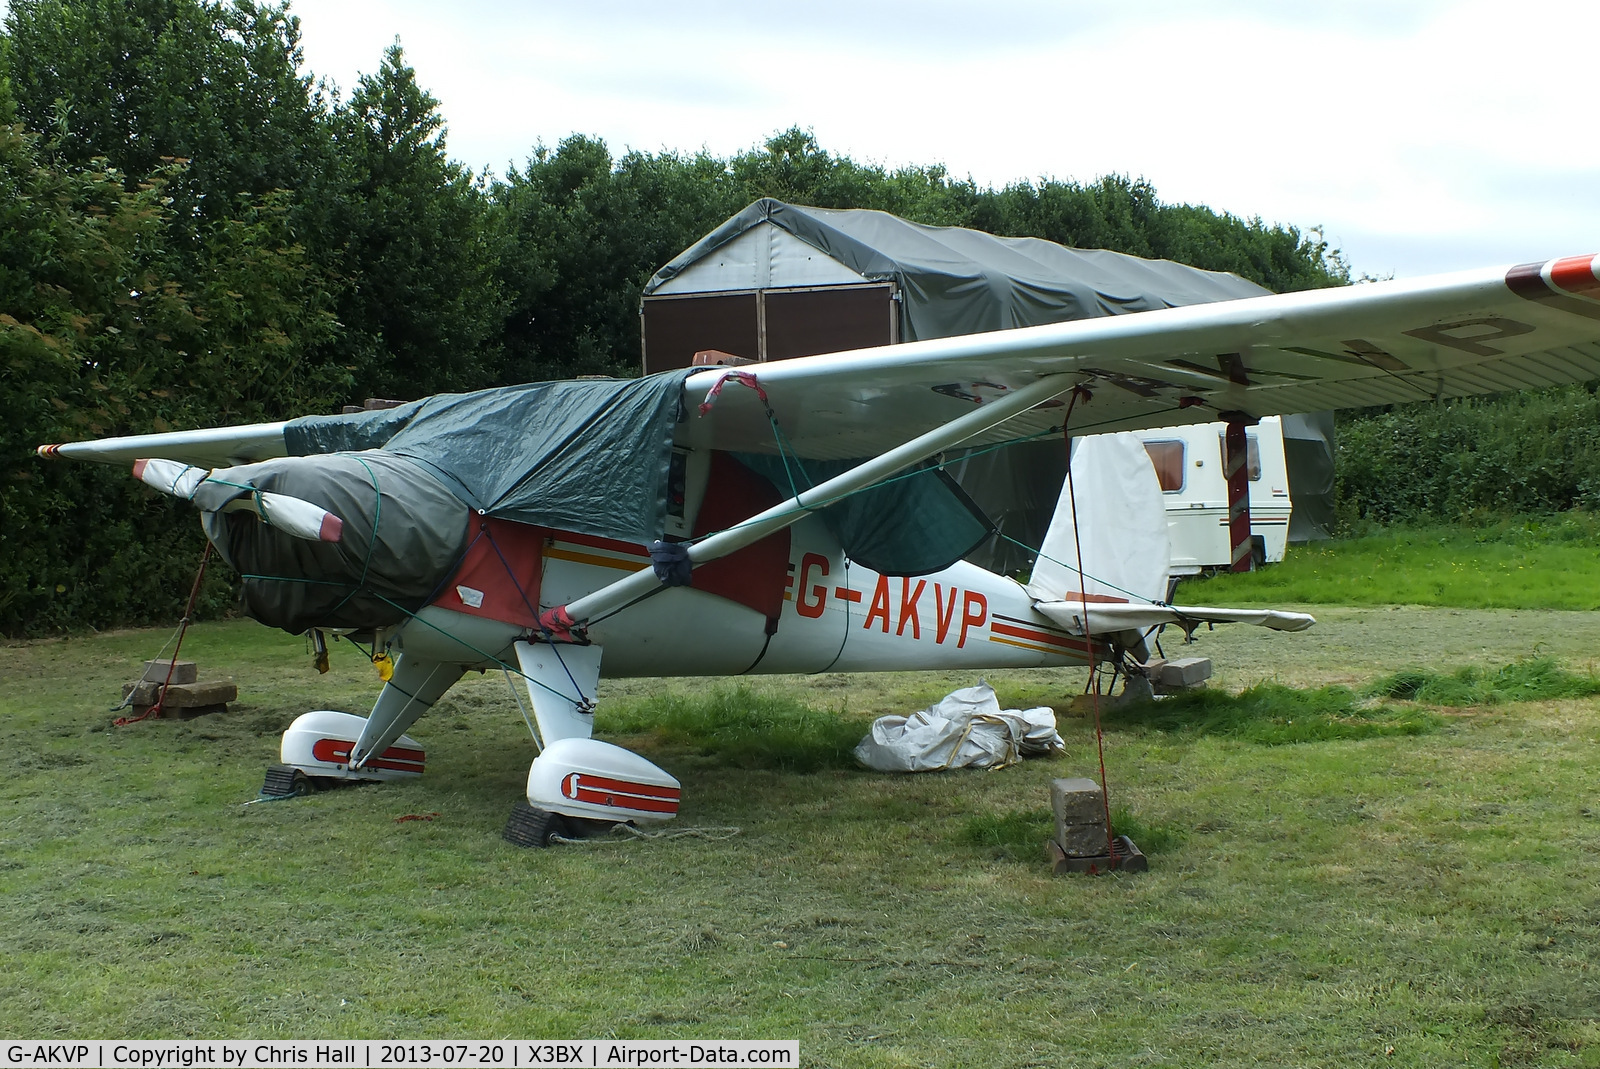 G-AKVP, 1948 Luscombe 8A C/N 5549, at Charity Farm, Baxterley